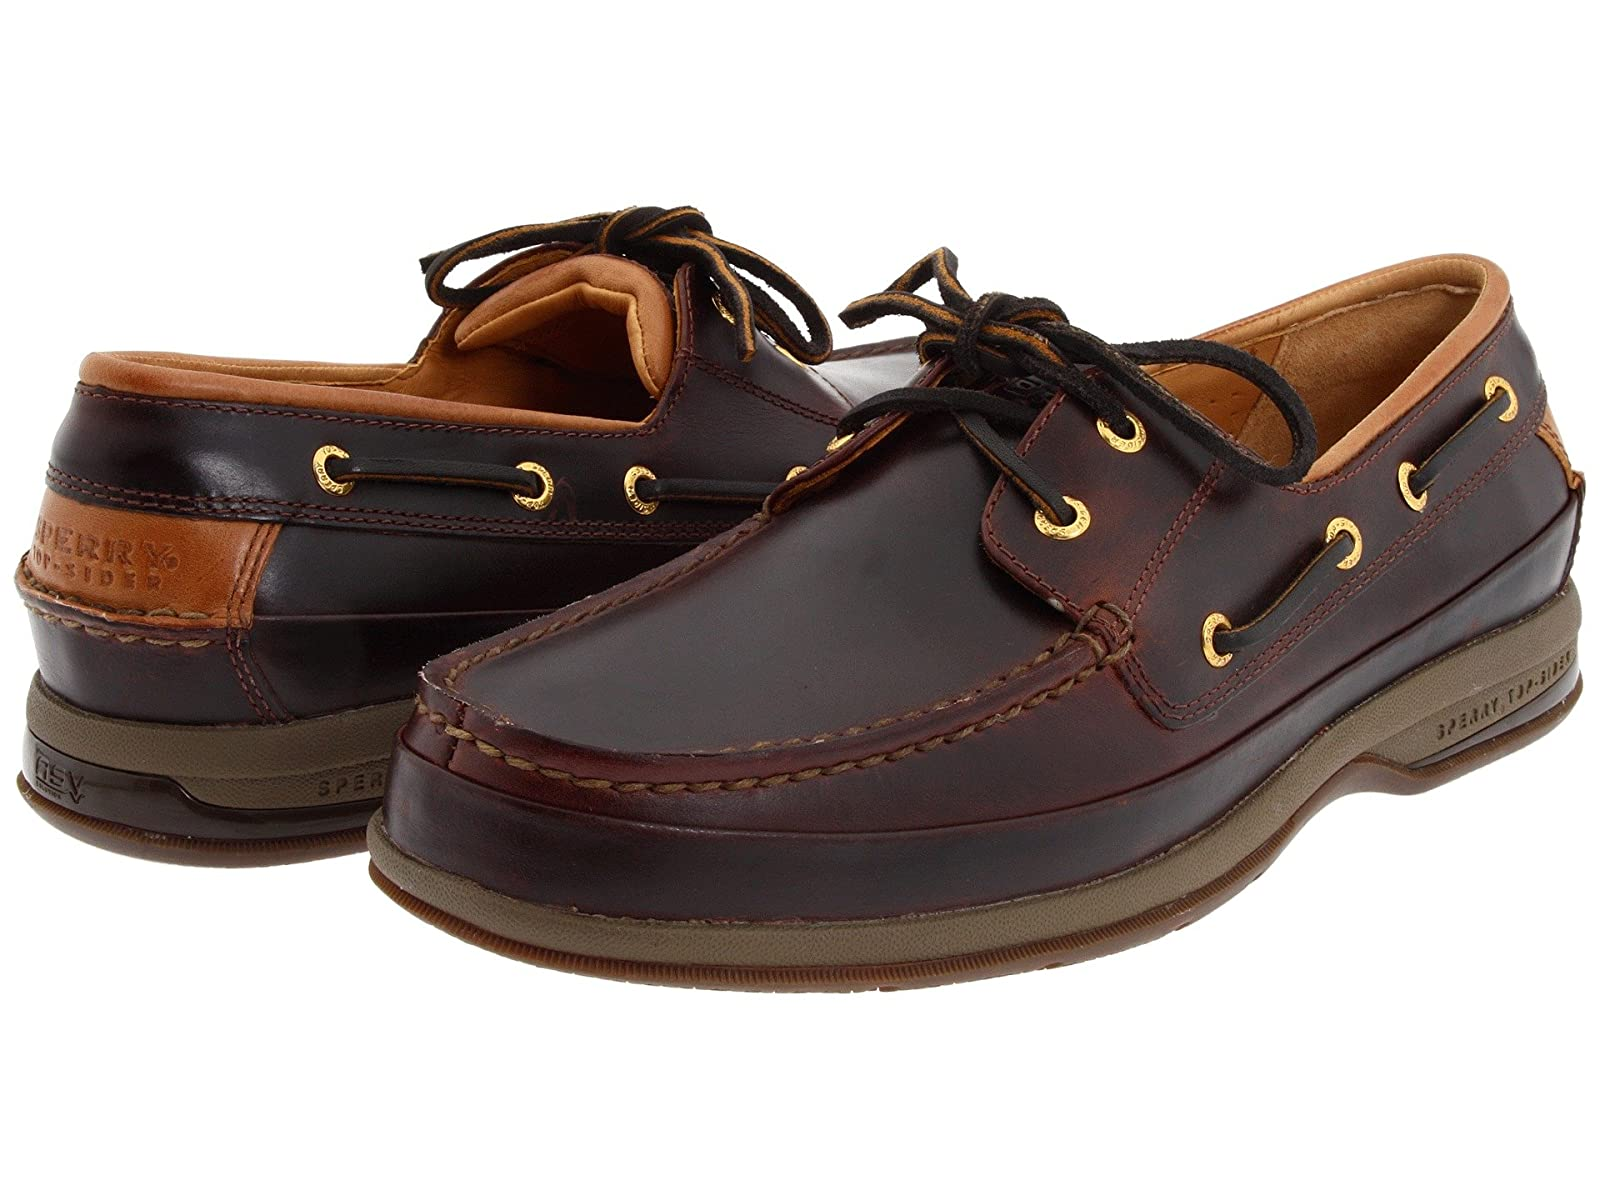 Sperry Gold Boat w/ASVCheap and distinctive eye-catching shoes